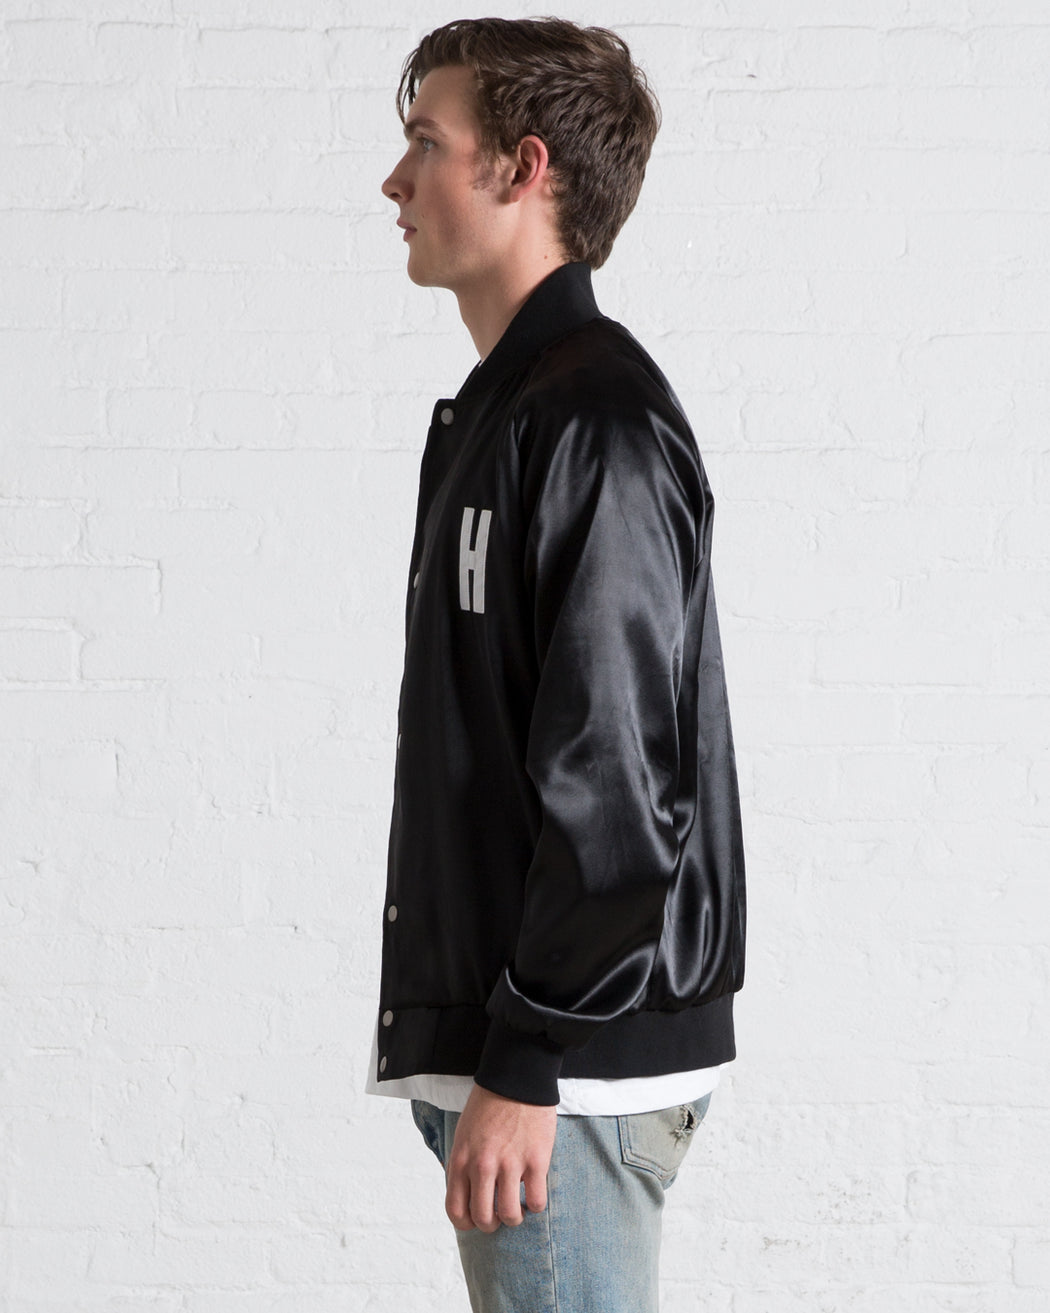 HOTEL California Classic Jacket - Black